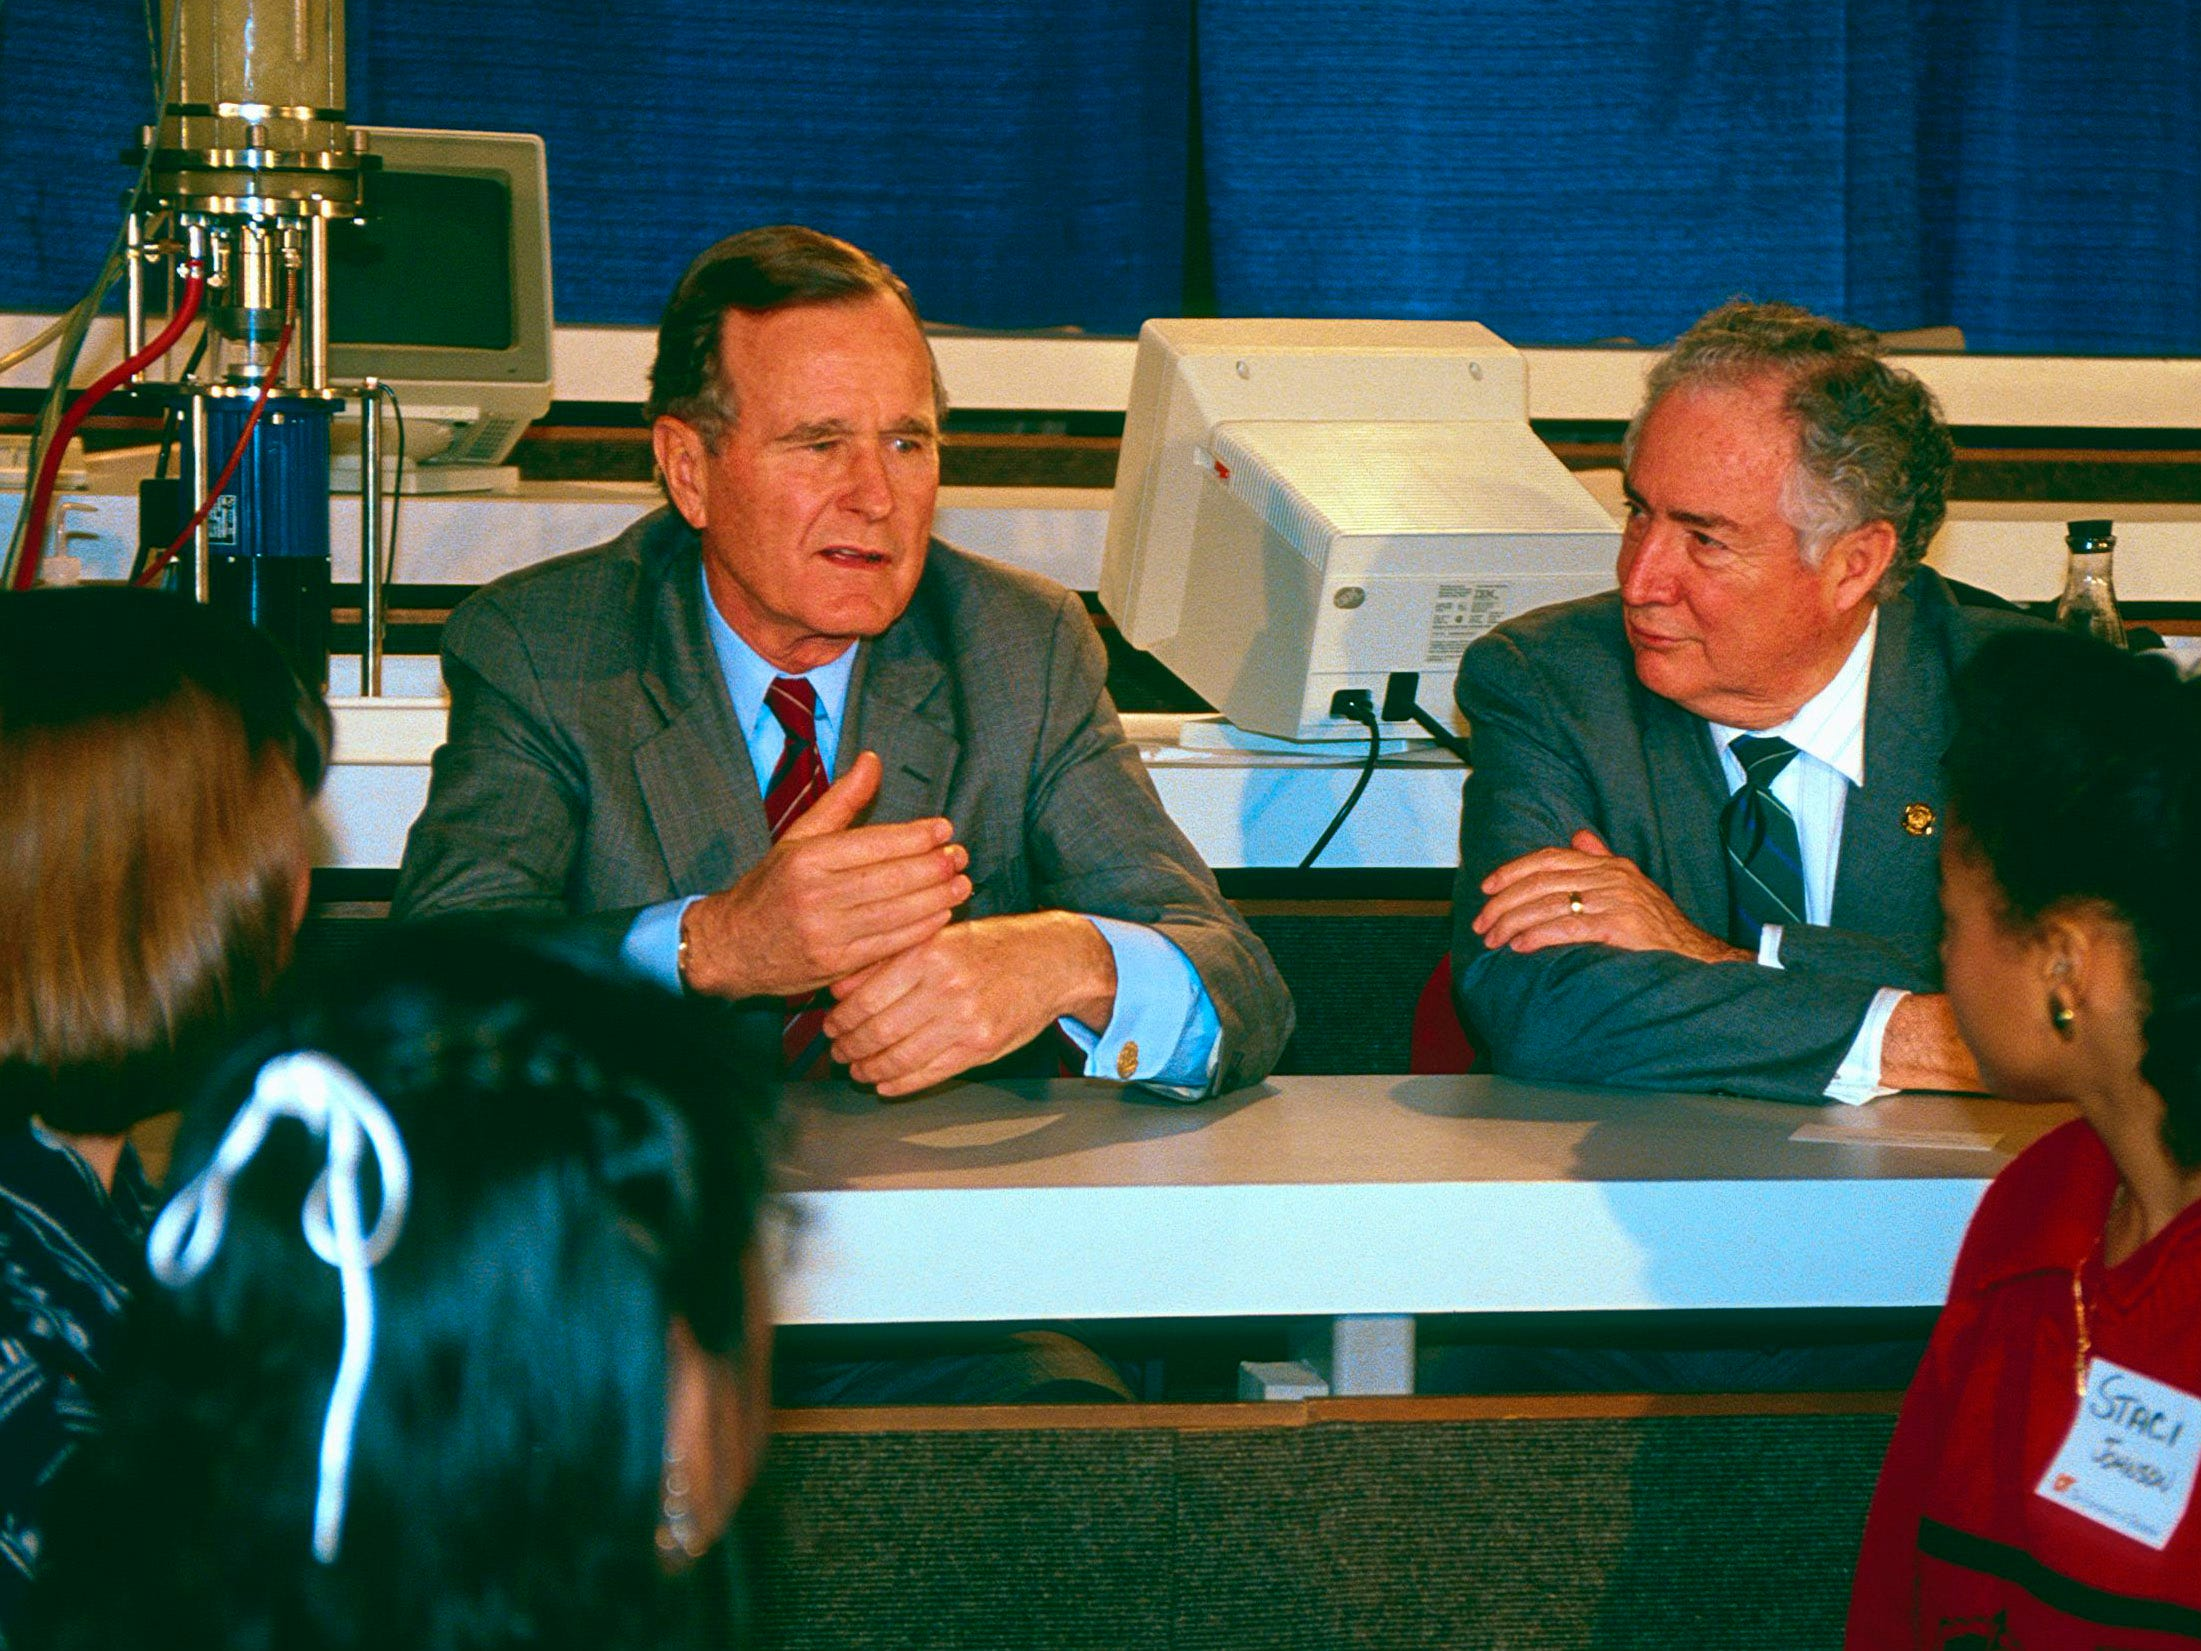 President George H.W. Bush, left, and U.S. Secretary of Education Lauro F. Cavazos engage students in discussion on Feb. 2, 1990, at the University of Tennessee. During the President's UT visit, it was announced that $3 million was being made available to start a four-week summer school for 200 of the state's top math and science teachers.